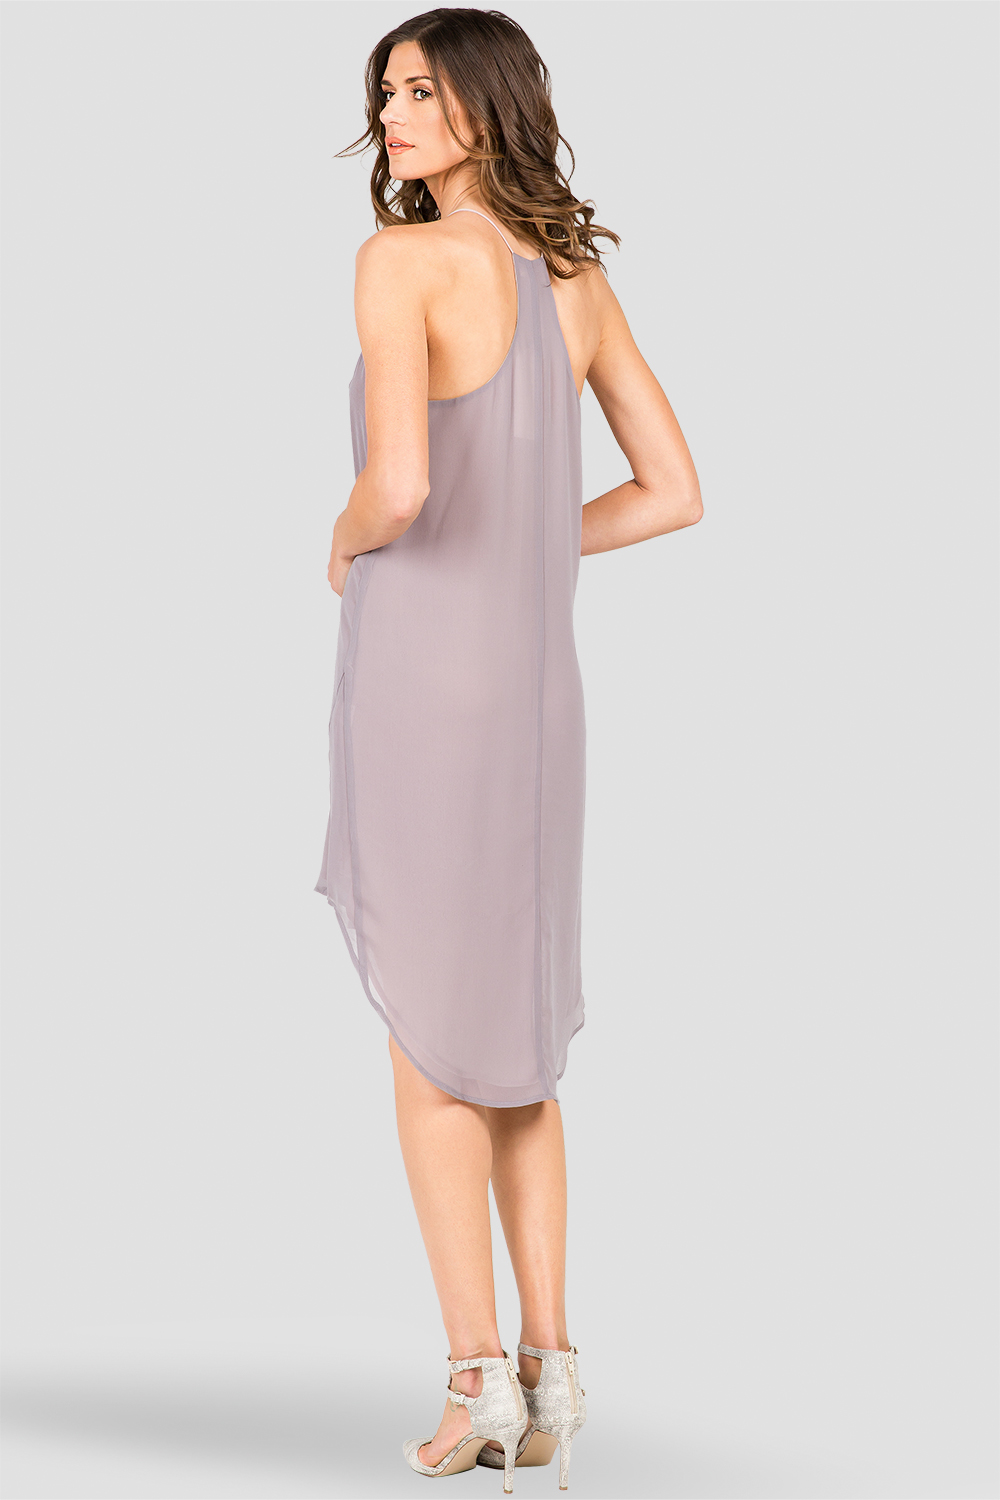 Smoke Gray  Racerback Dress with High-Low Hem